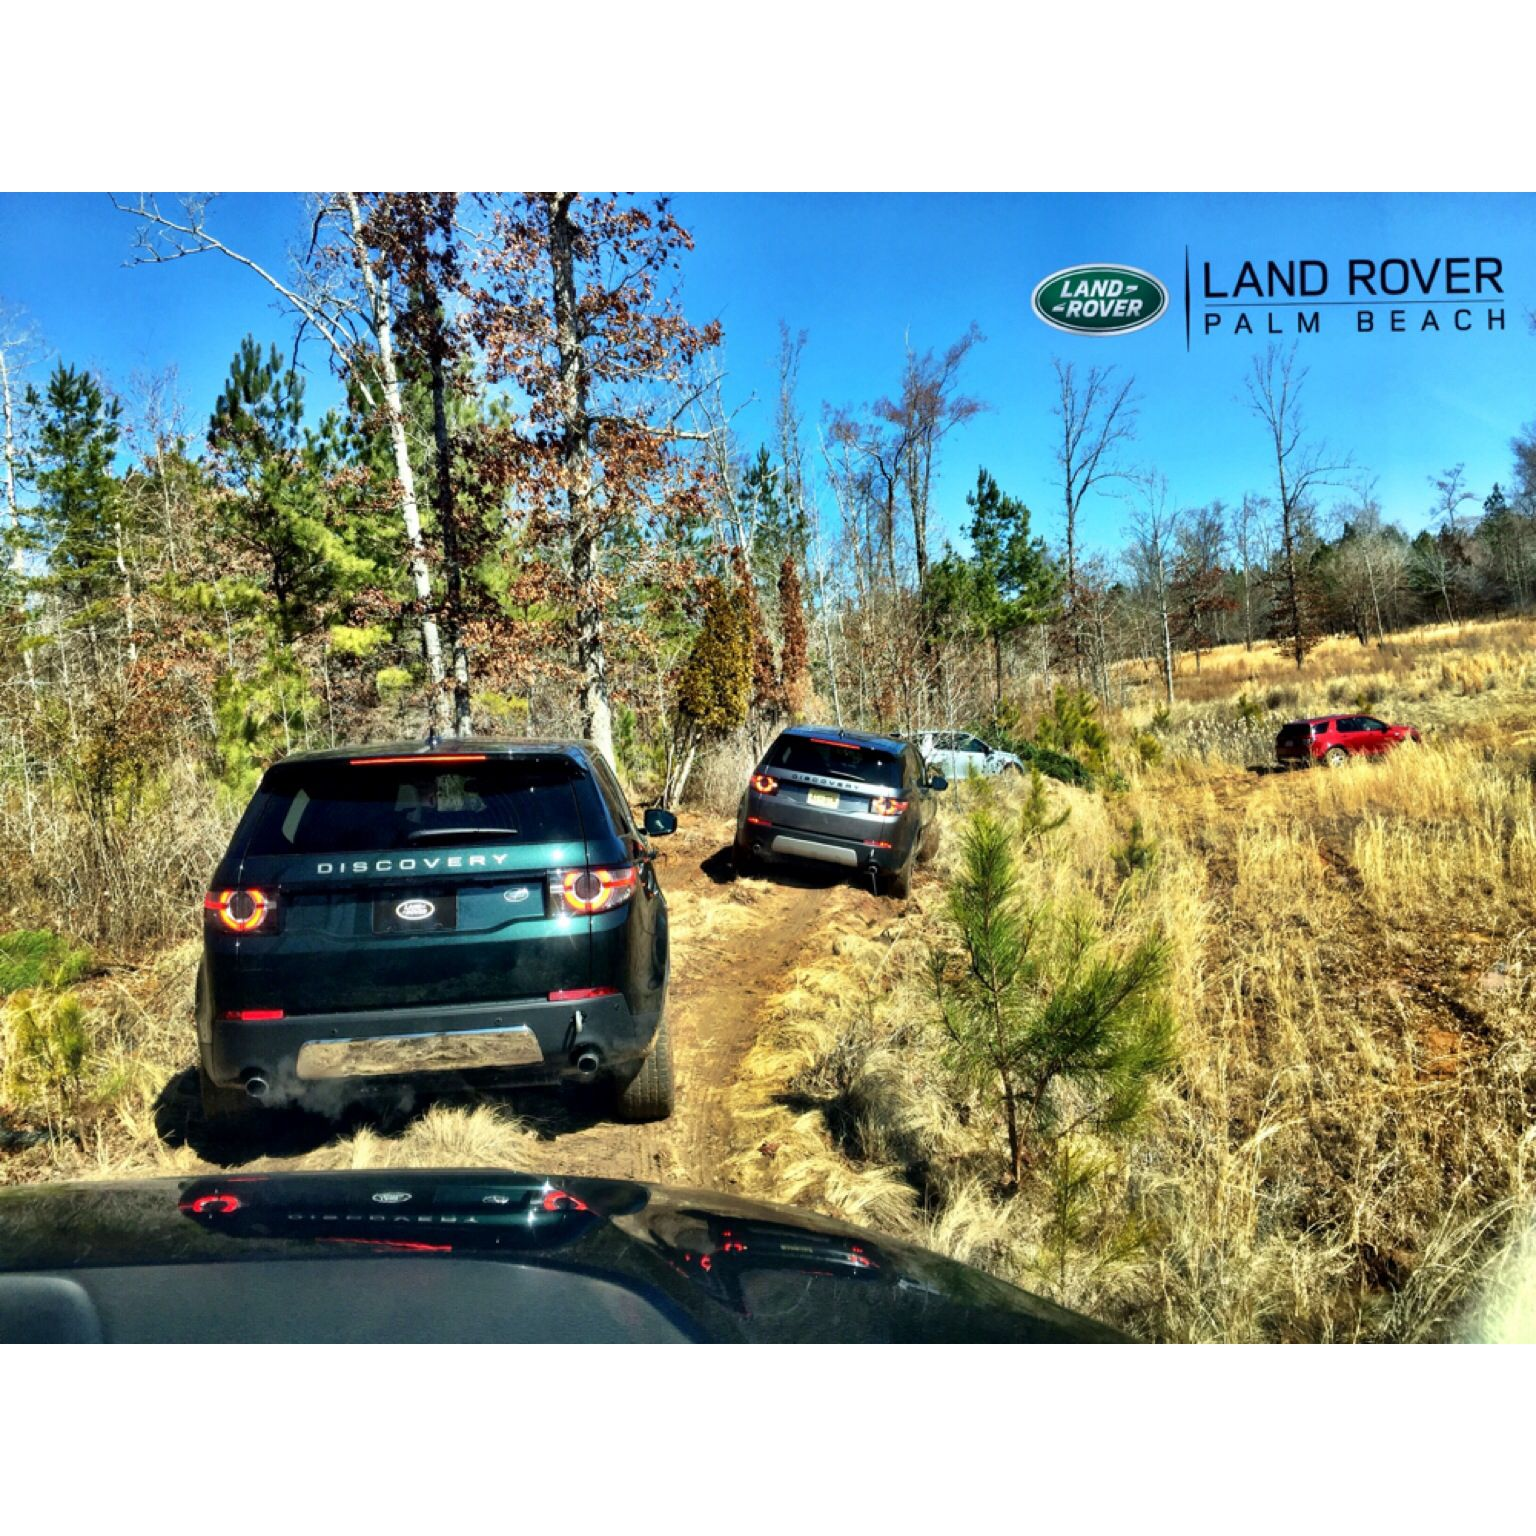 A Day In The Life Of A Land Rover... landroverpalmbeach